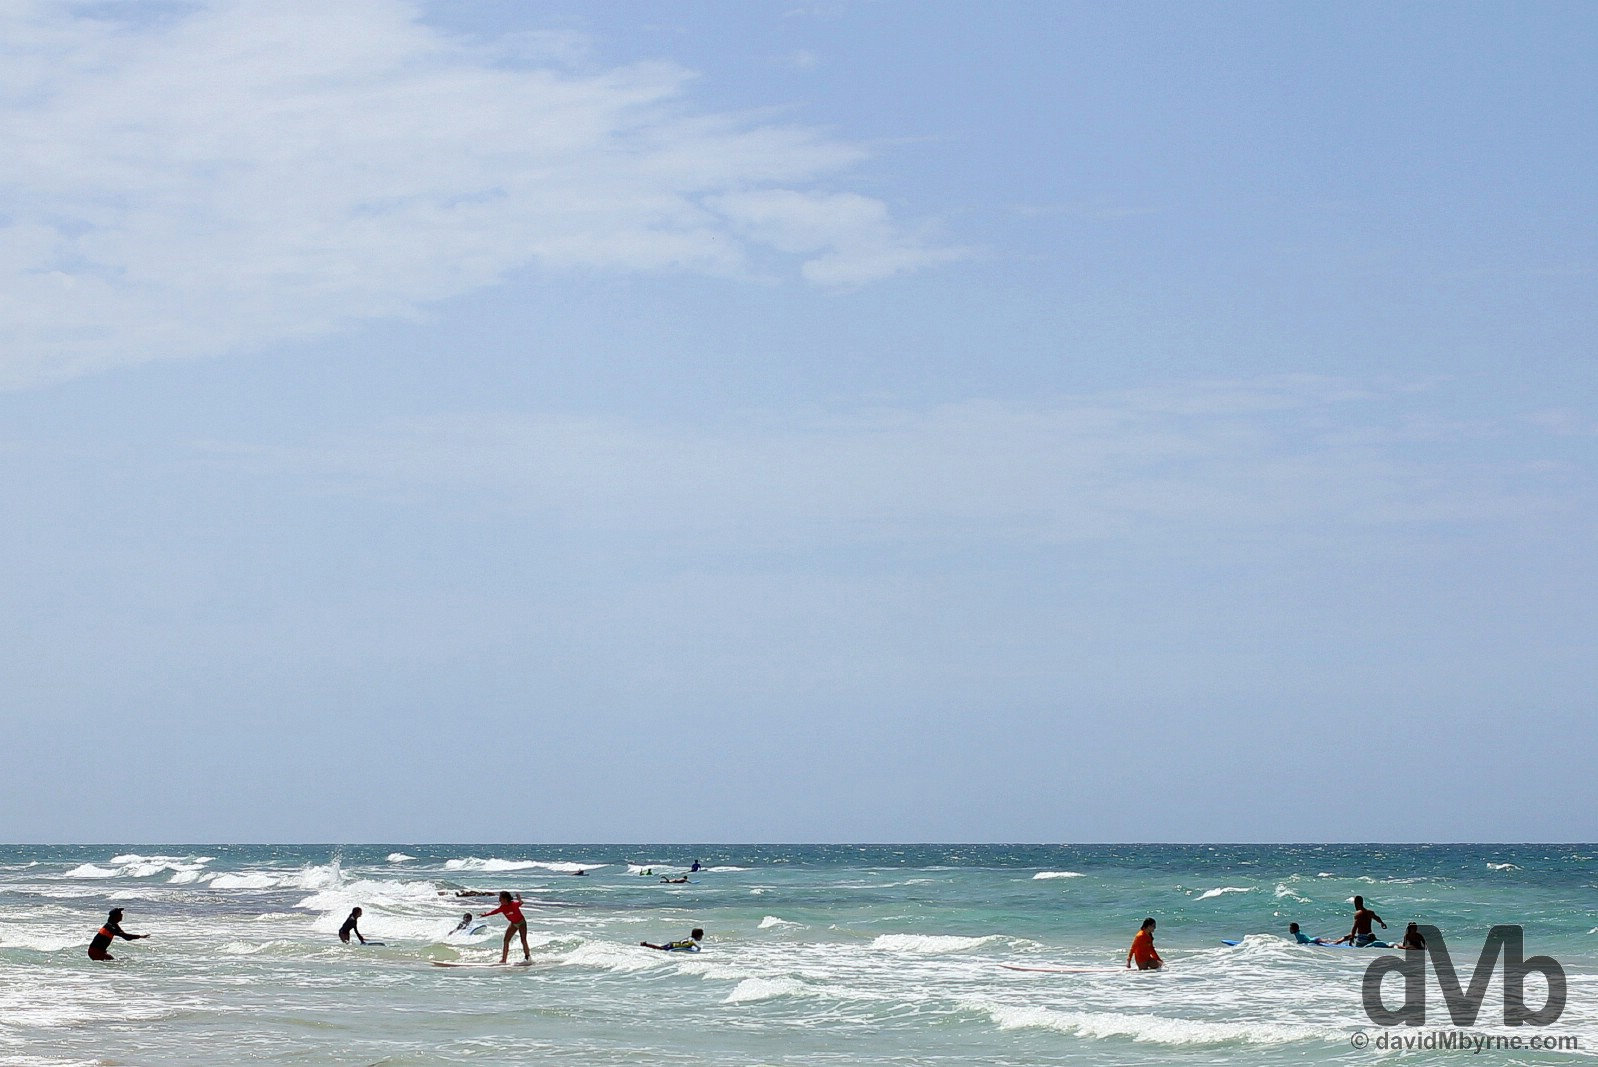 Surfing lessons on Playa Ocean Park in San Juan, Puerto Rico, Greater Antilles. June 1, 2015.